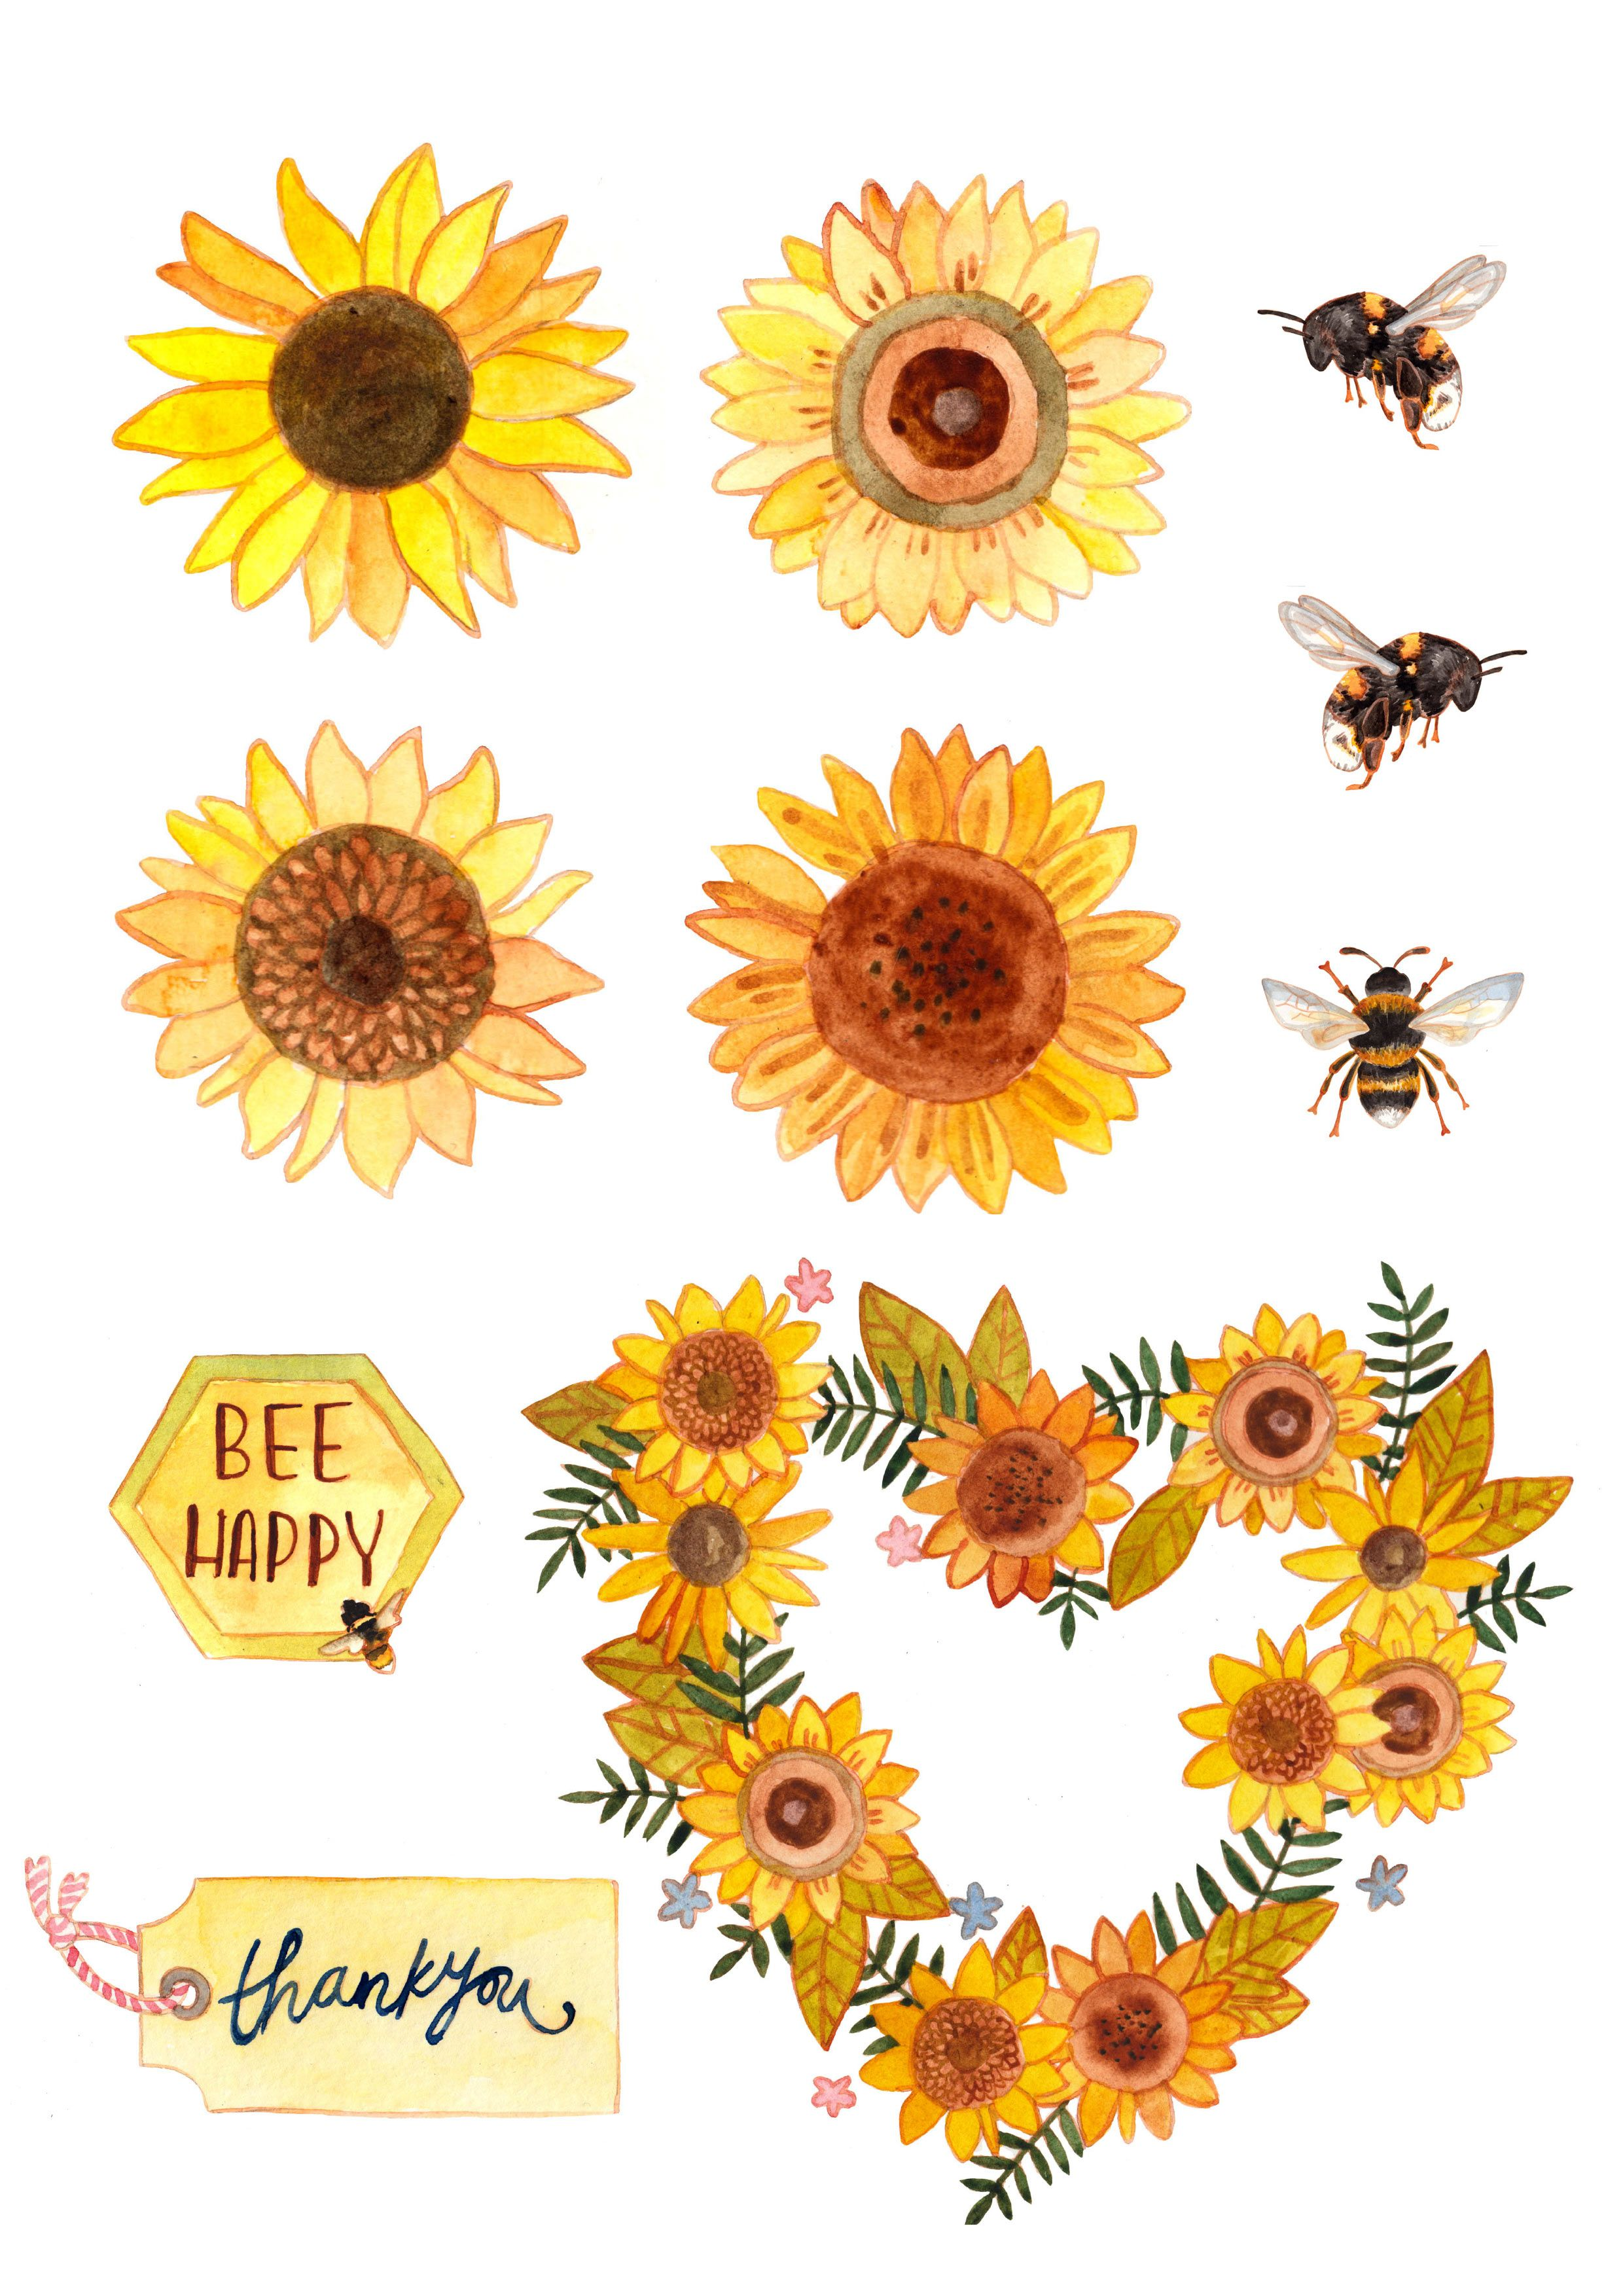 Free Sunflower And Bee Printables Bee Printables Sunflower Printable Free Printable Art